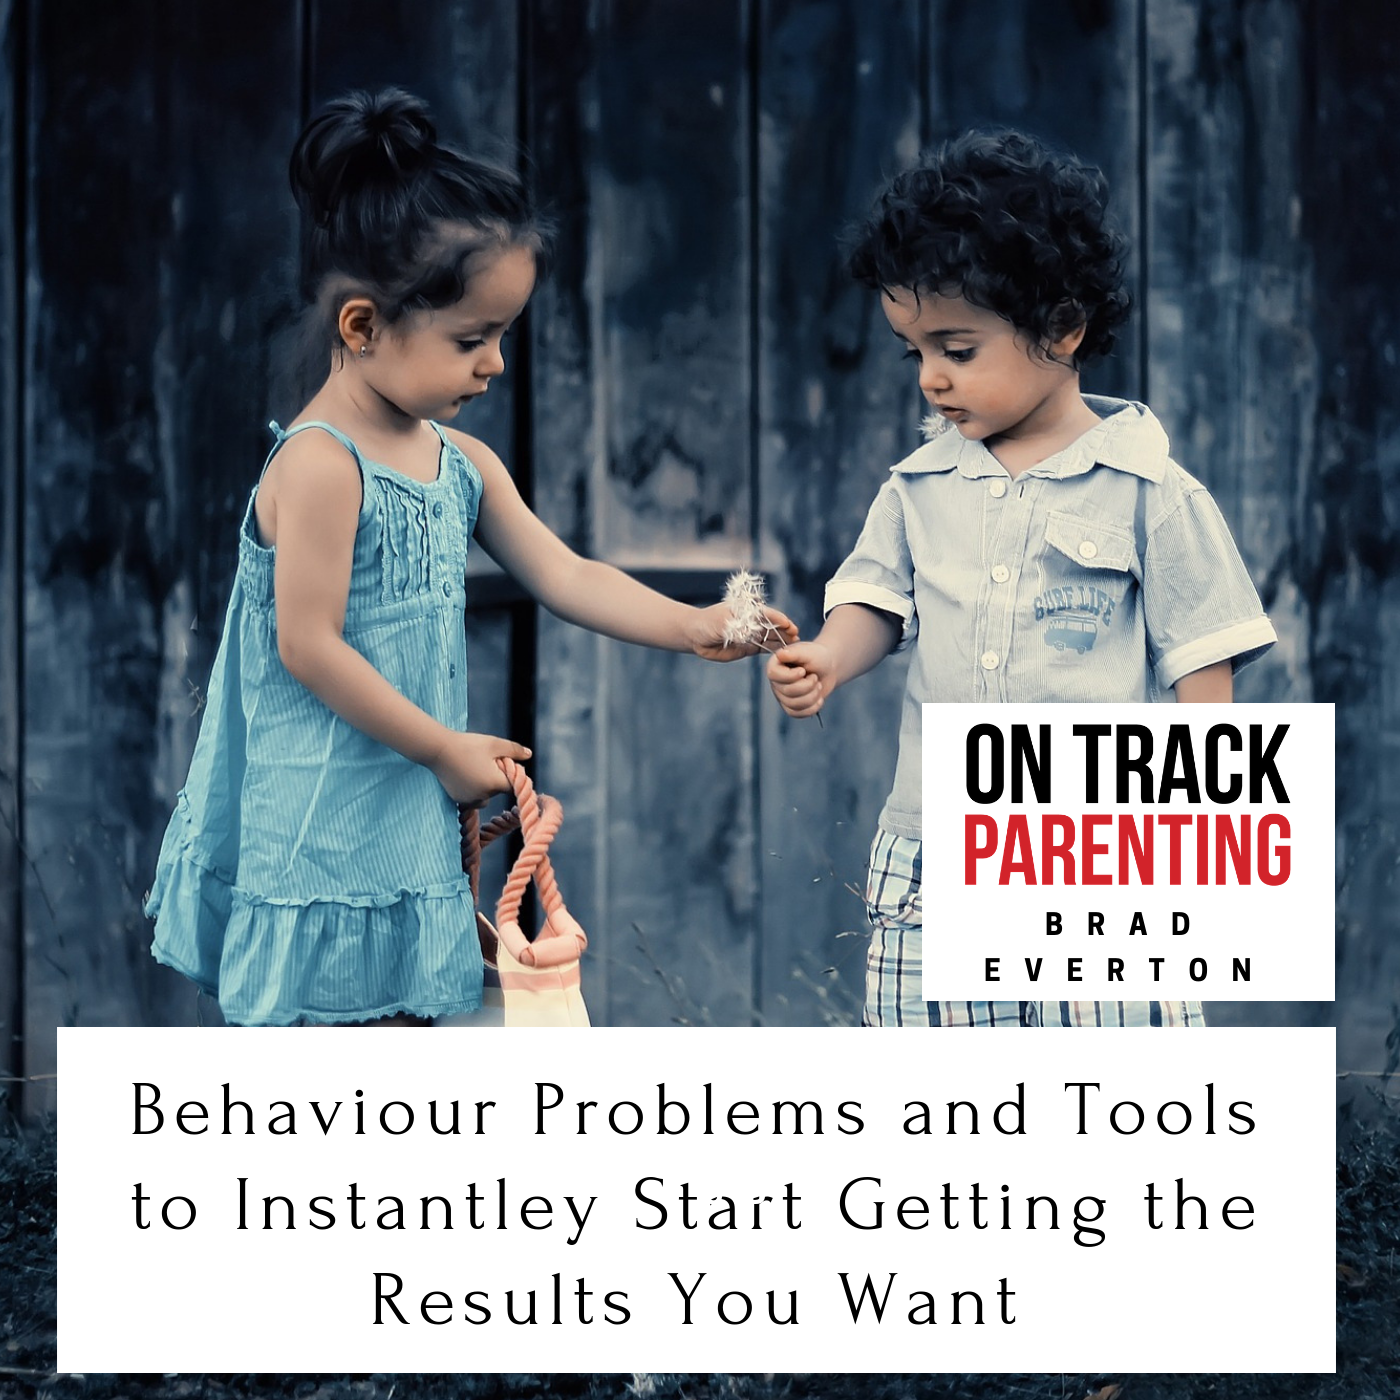 Behaviour Problems and Tools to Instantly Start Getting the Results You Want